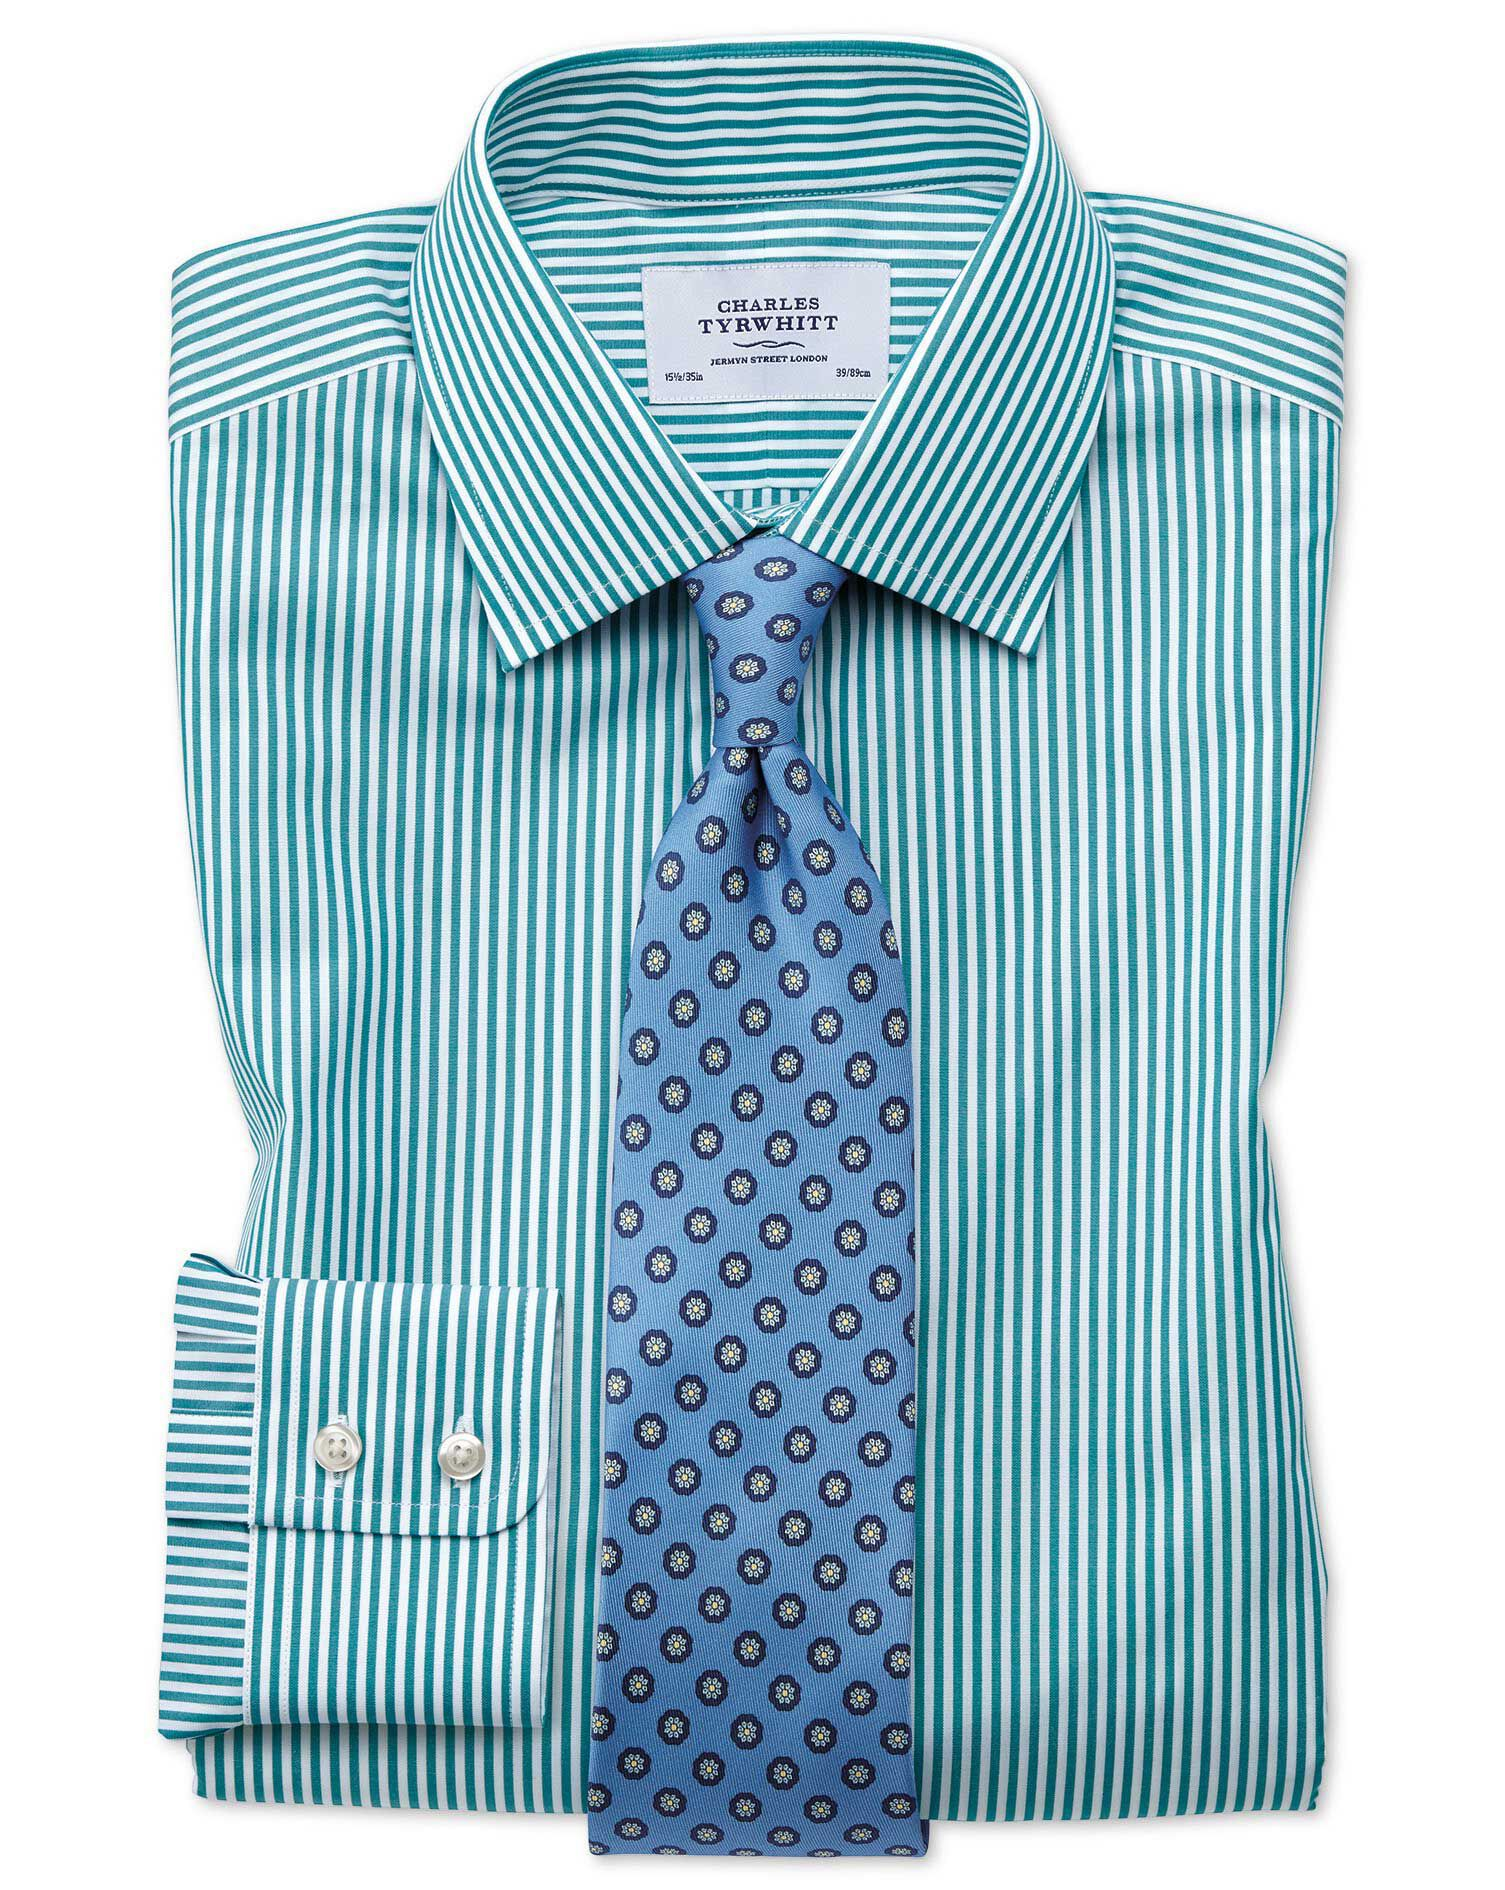 Classic Fit Bengal Stripe Green Cotton Formal Shirt Double Cuff Size 17/37 by Charles Tyrwhitt